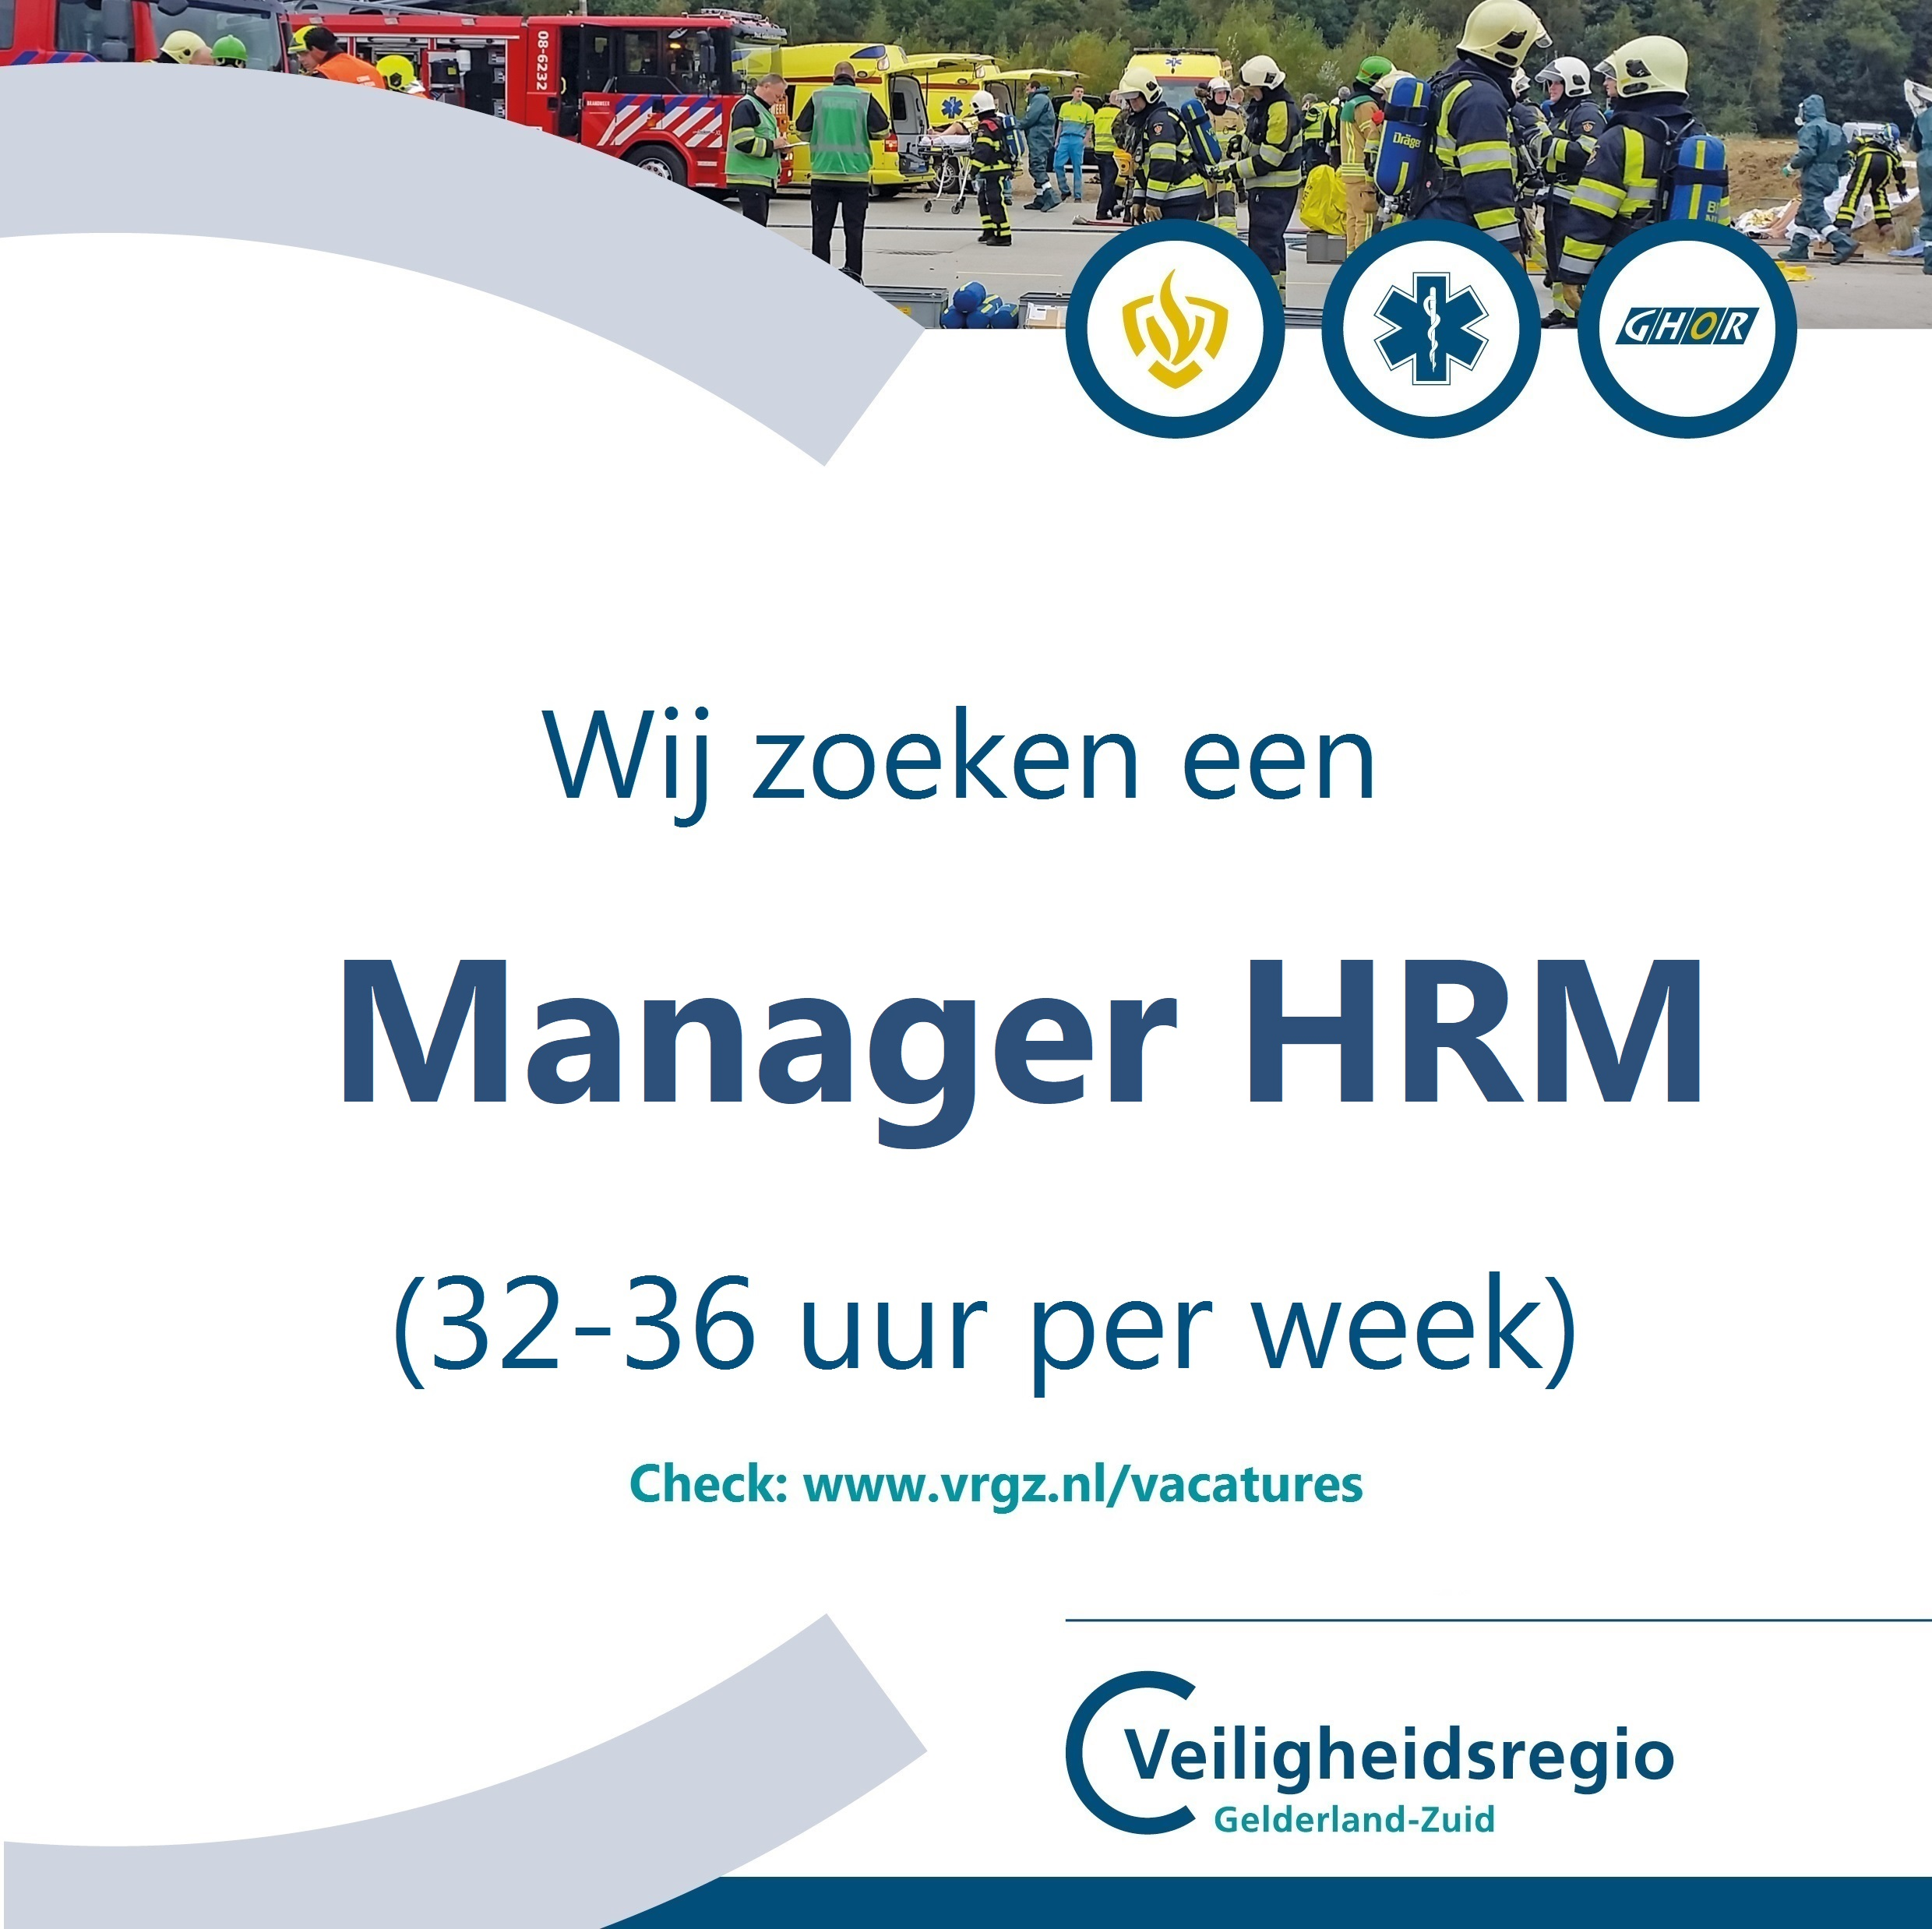 Vacature manager HRM.jpg